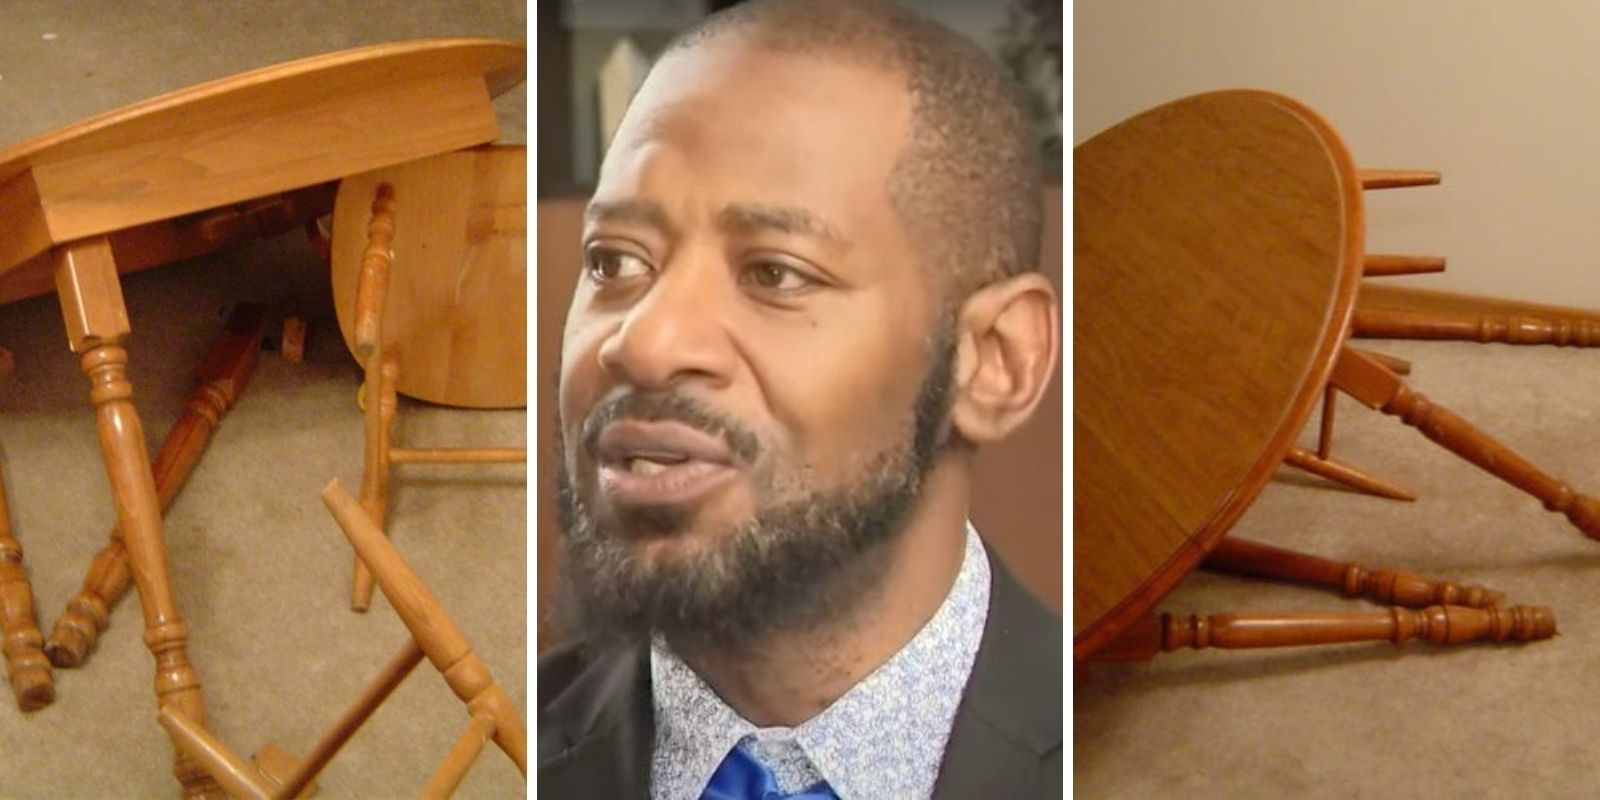 Photos reveal aftermath of Democrat state Rep. John Thompson's domestic assault on girlfriend